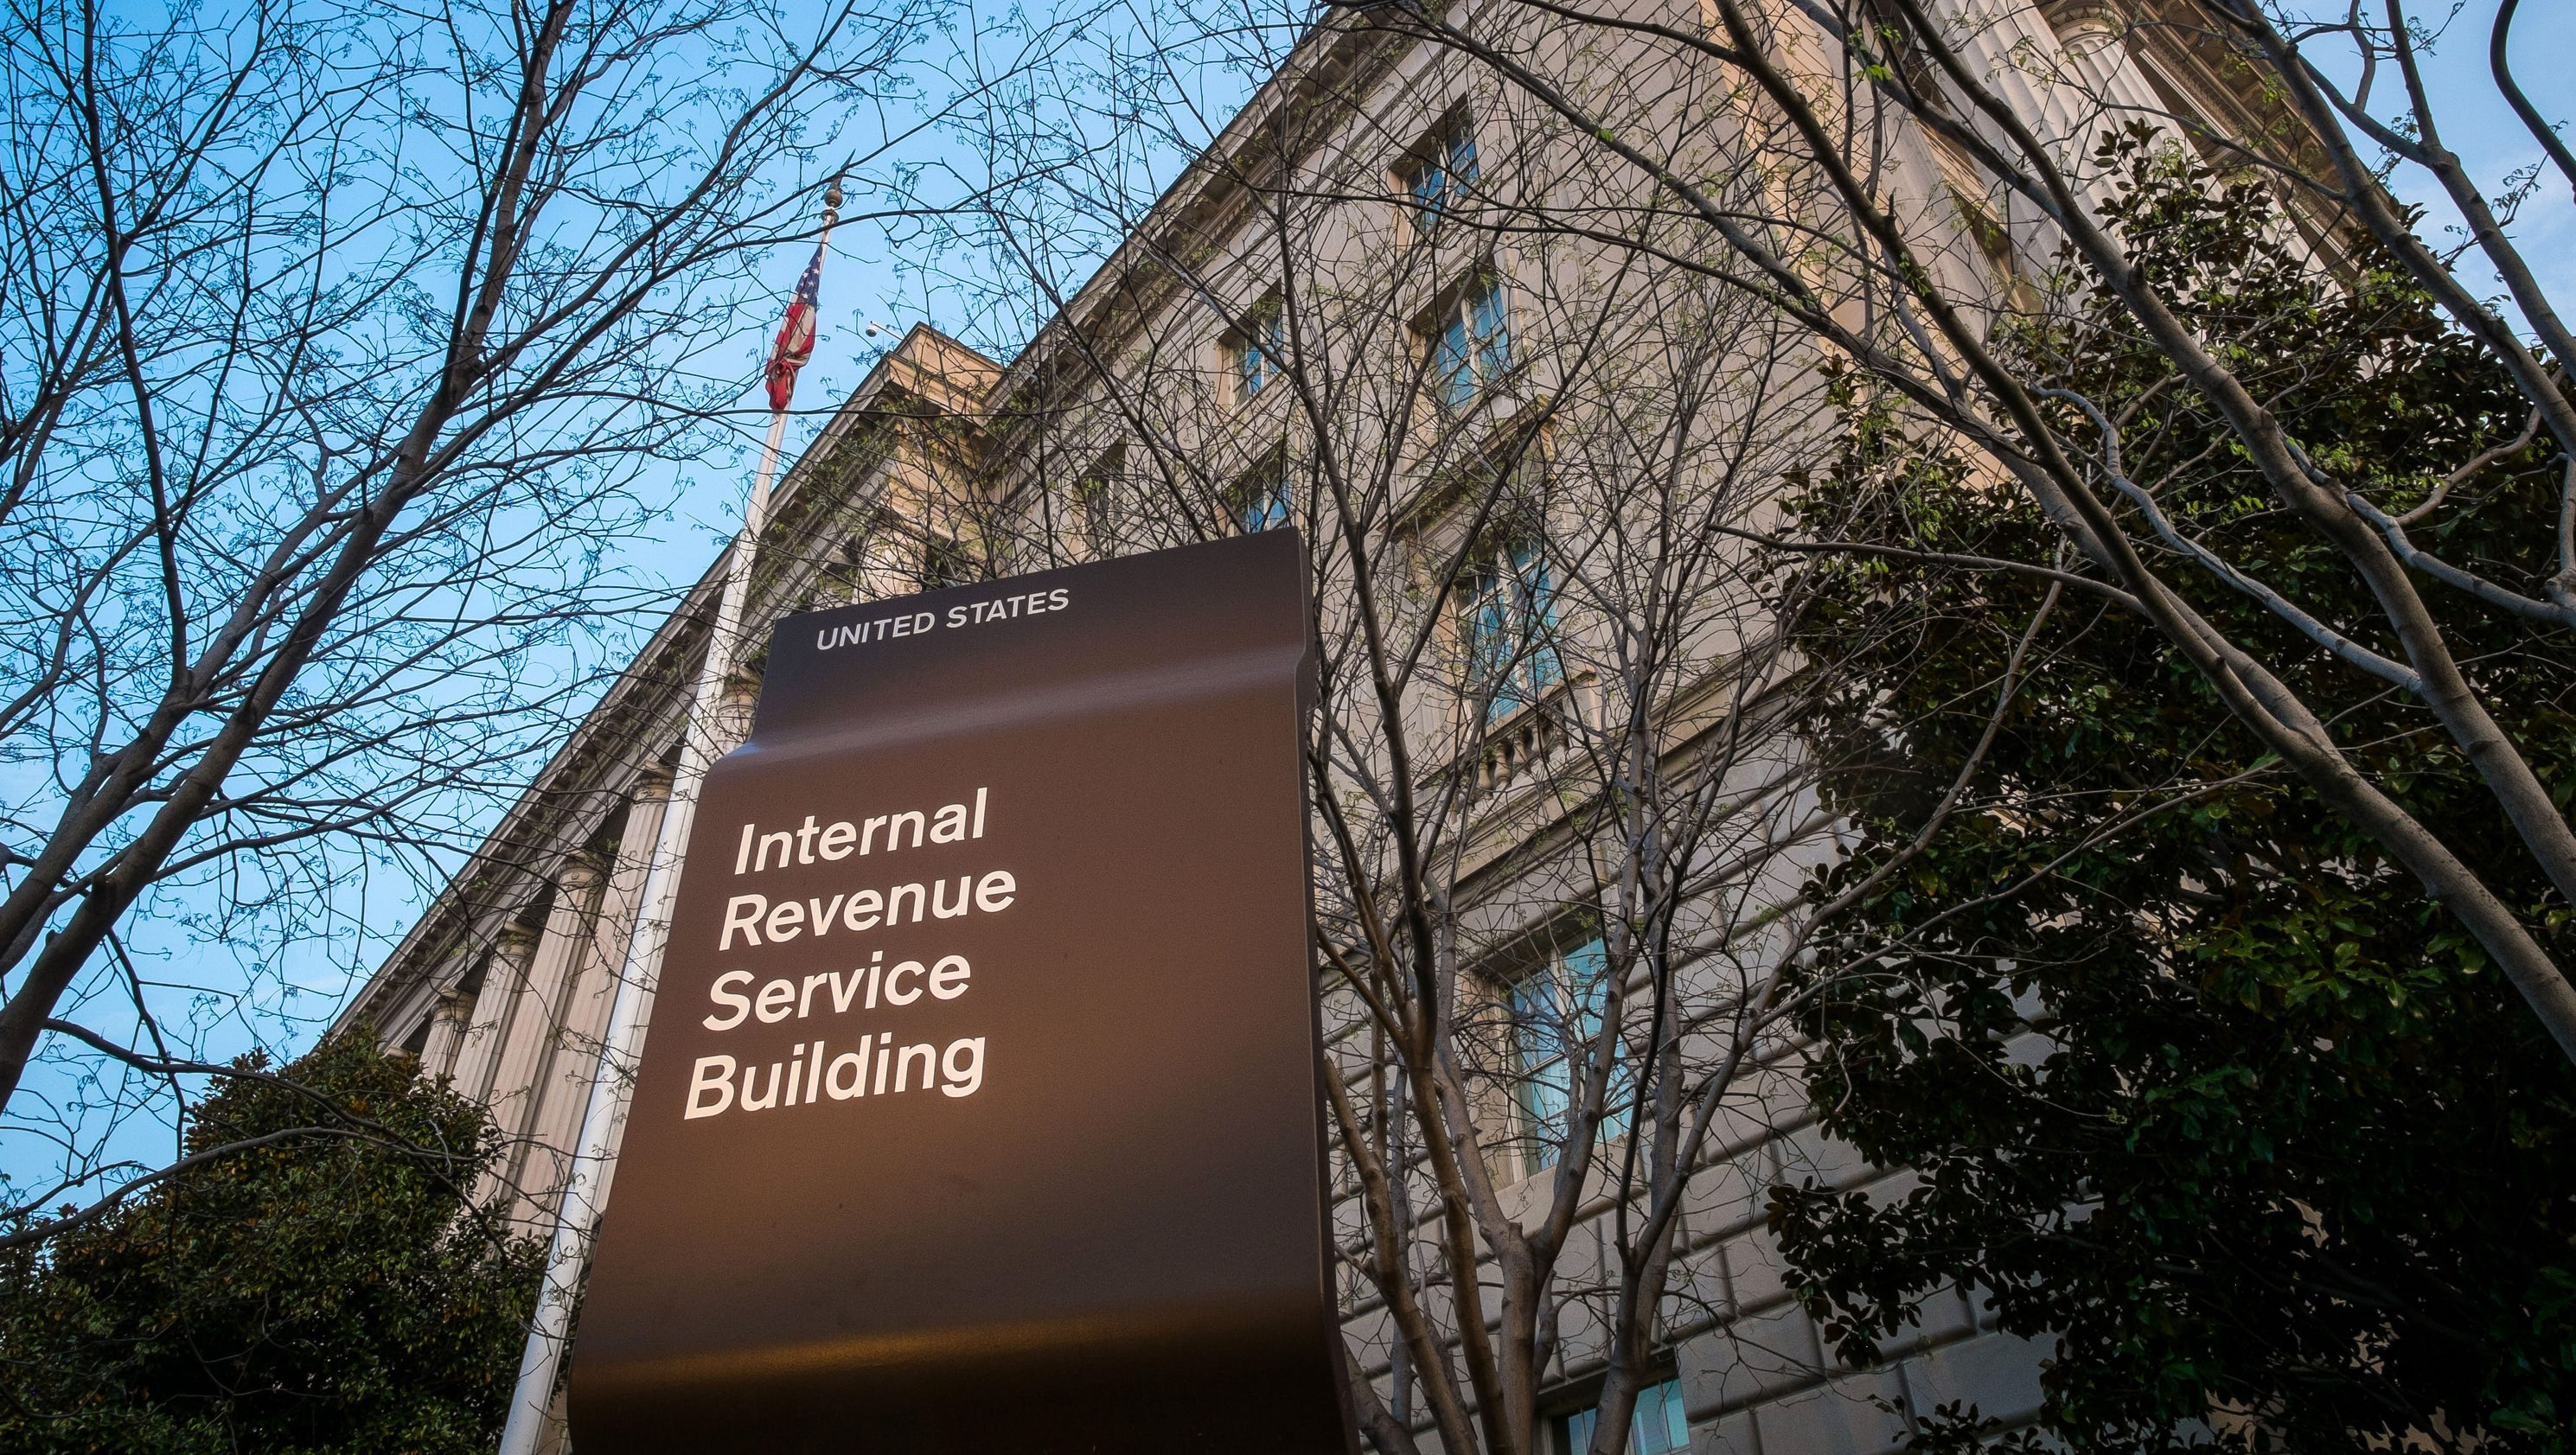 Irs says 2016 crackdown helped slow identity theft tax refund fraud falaconquin